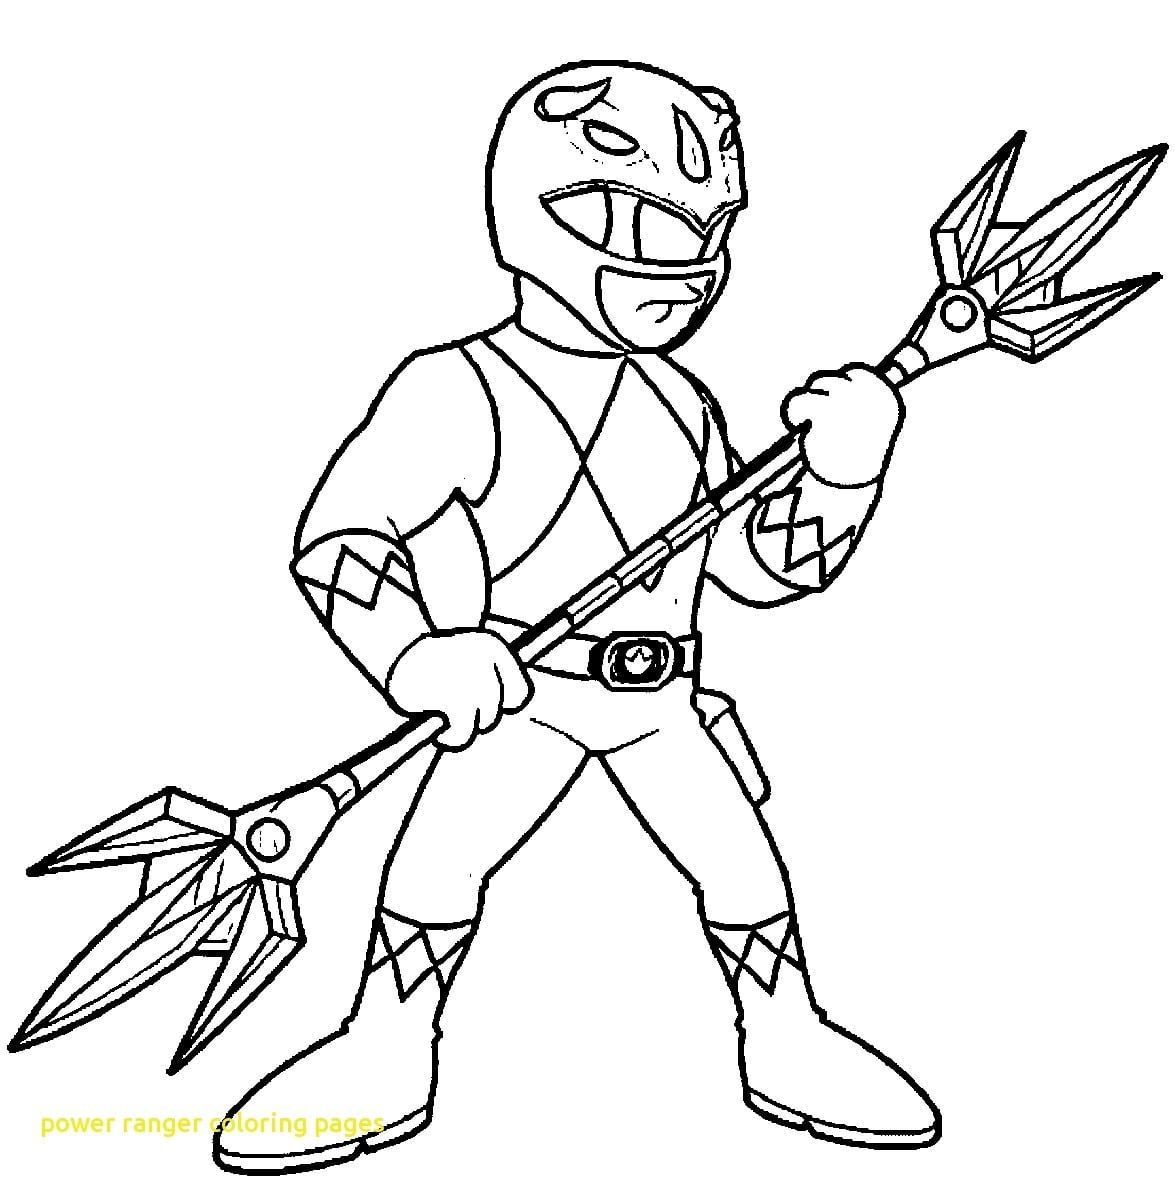 Approved Lego Lone Ranger Coloring Pages Attractive Power Rangers